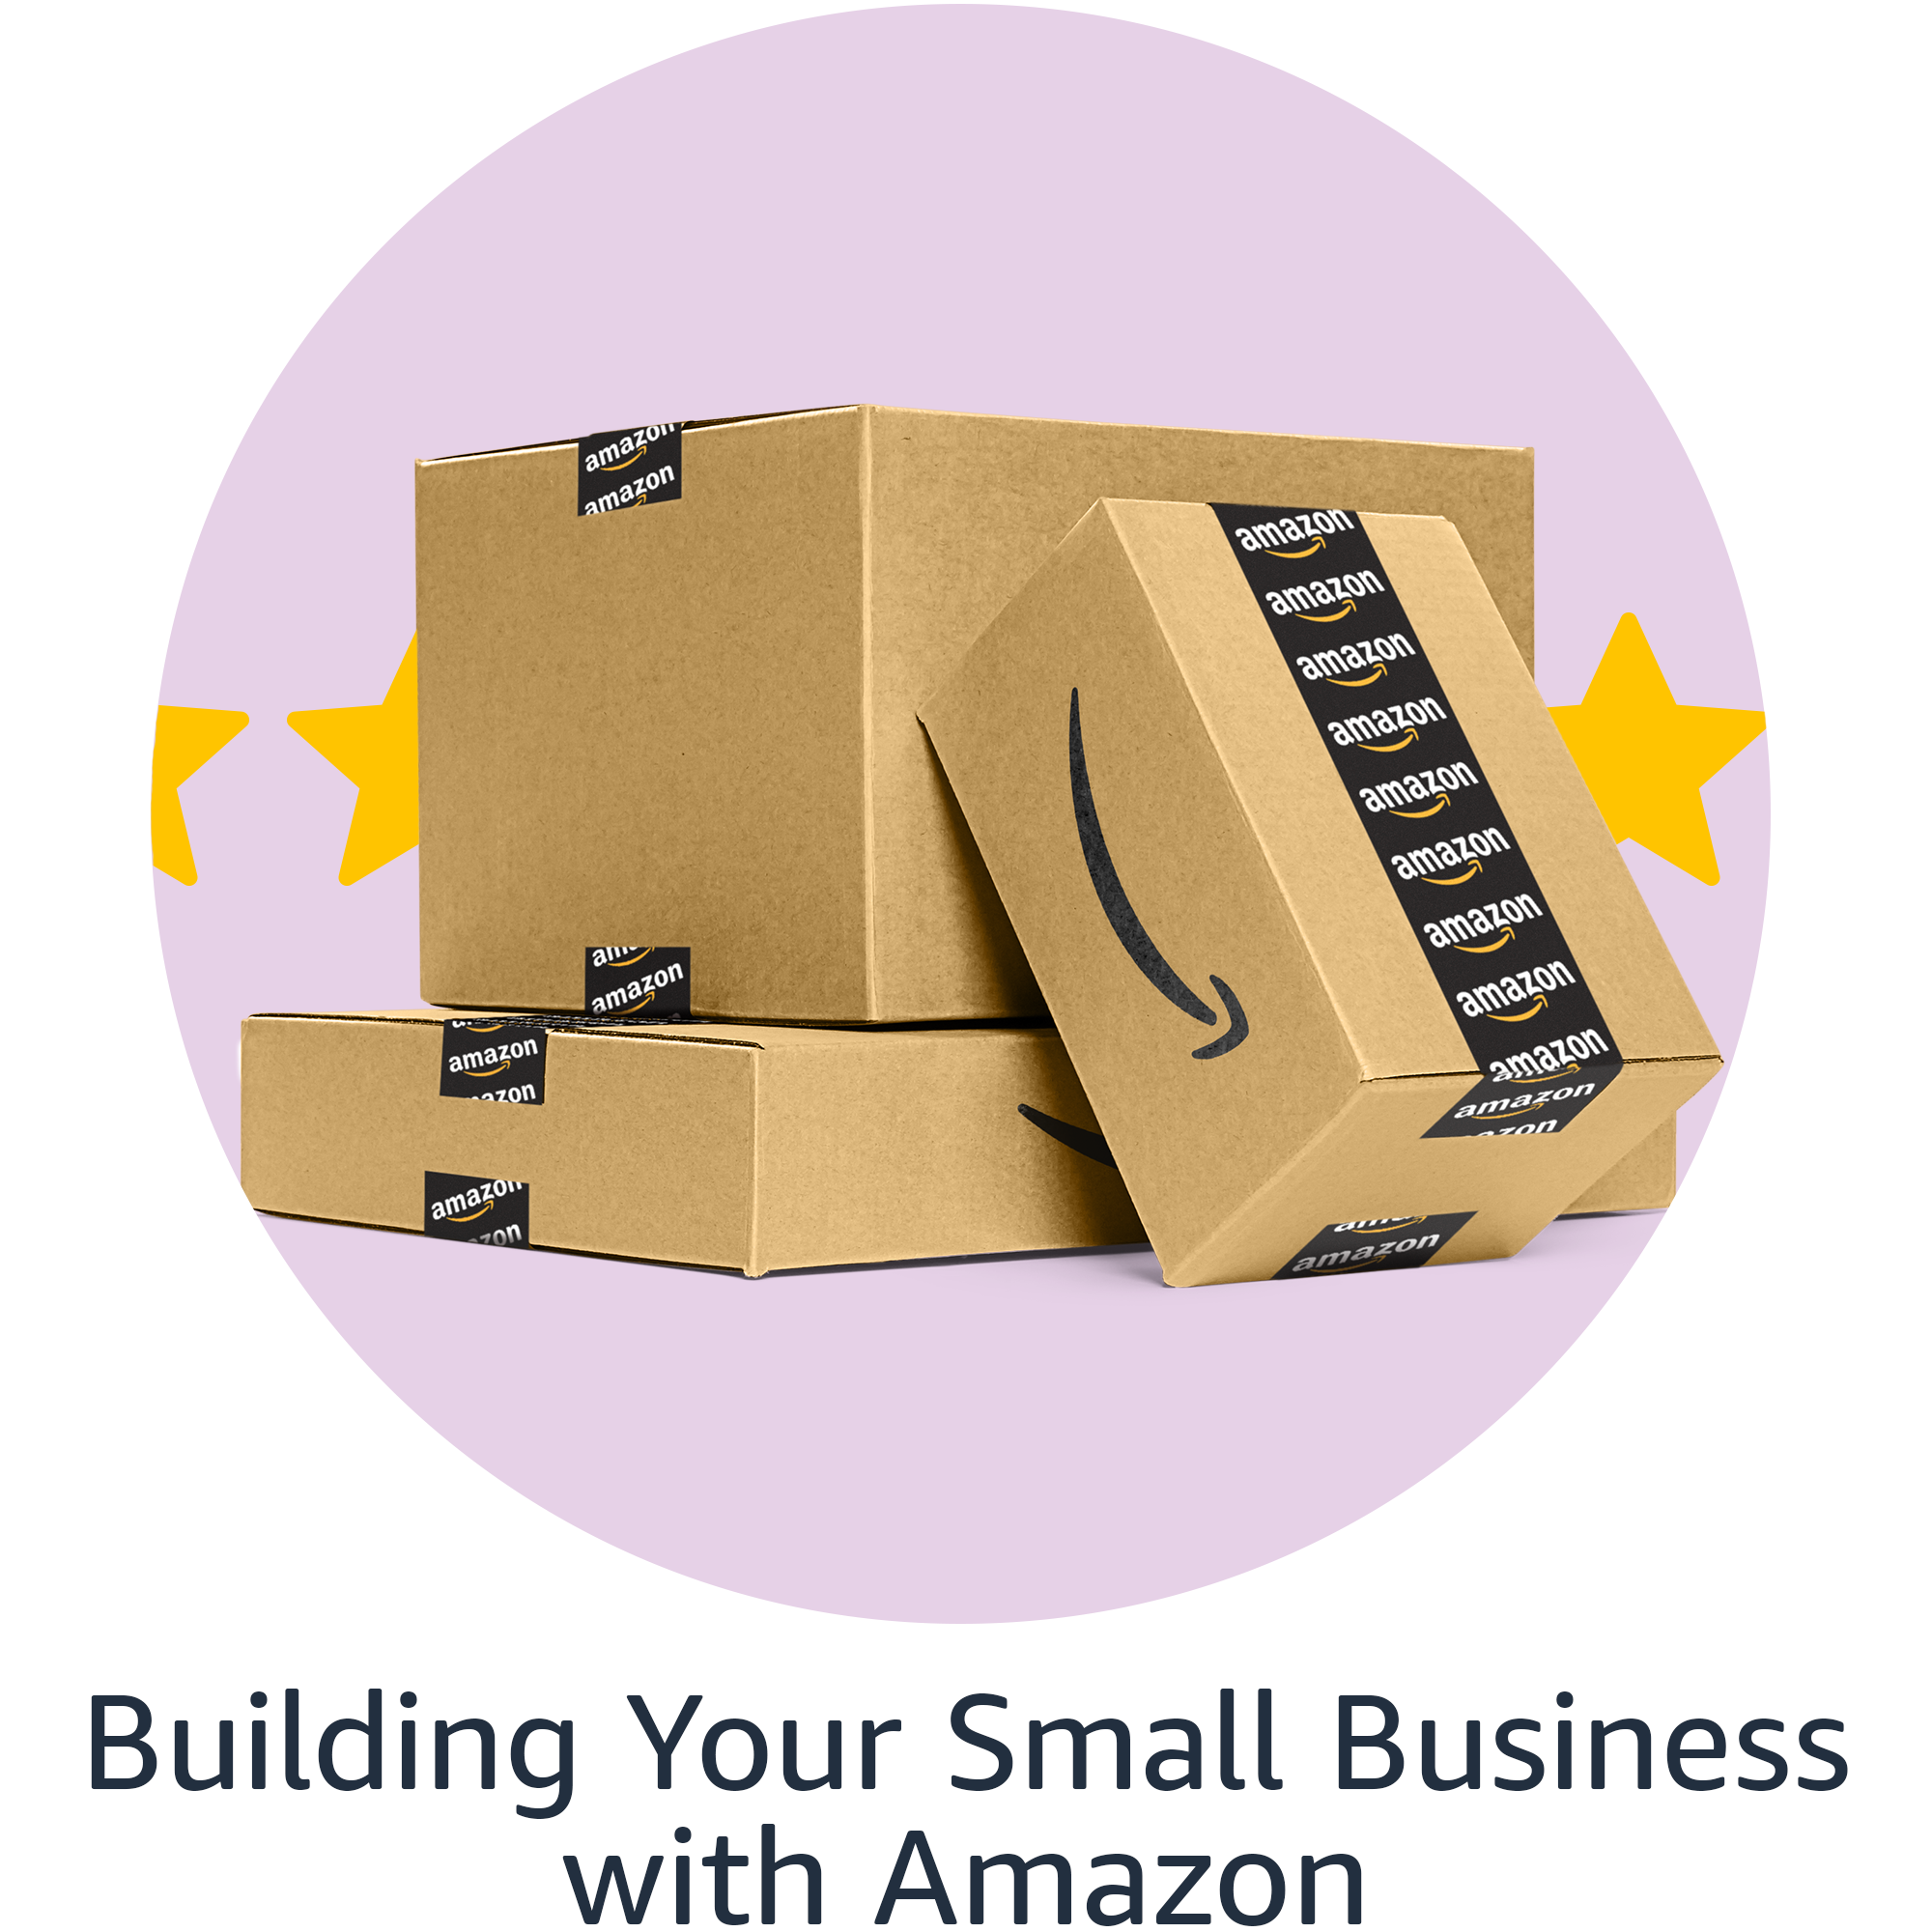 Building your small business with Amazon image link